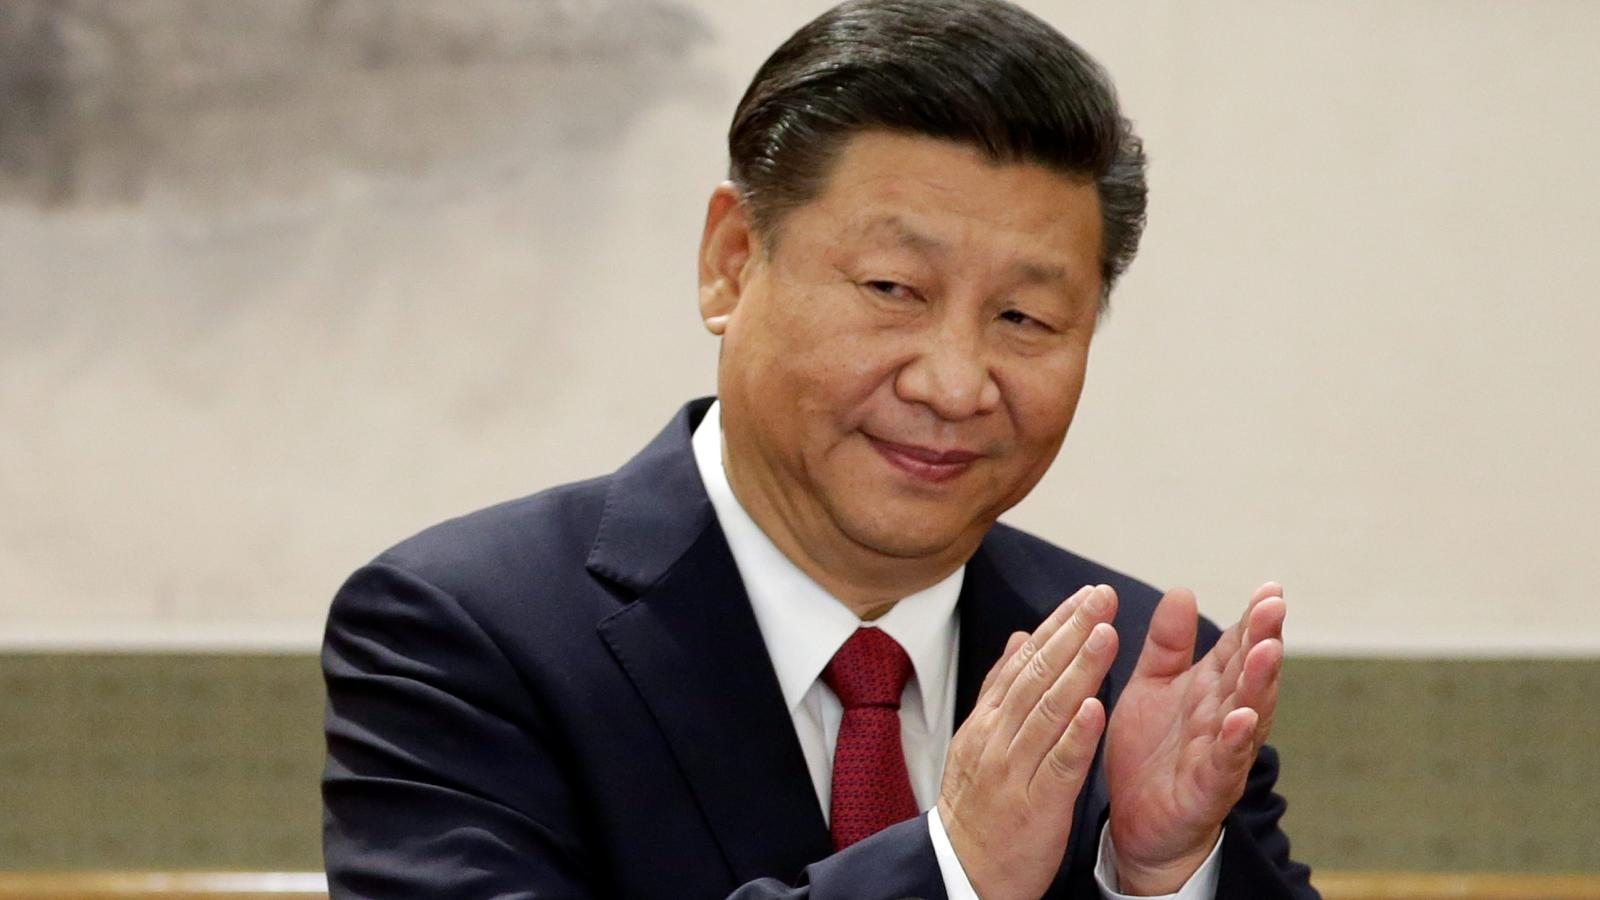 Africa To Bank On China's Leadership Amid Vaccine Greed, Chaos